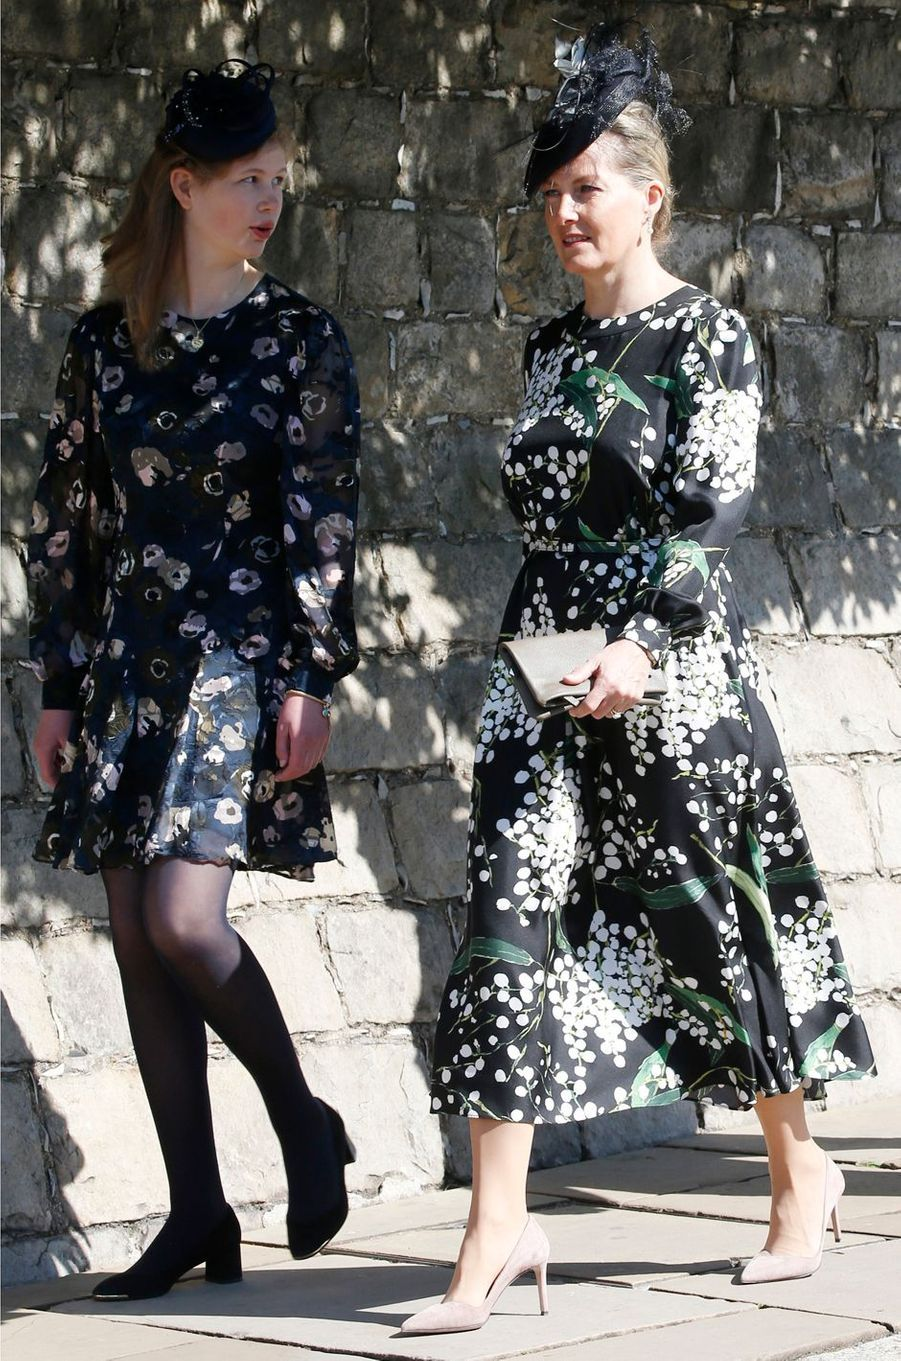 Lady Louise Windsor et sa mère la comtesse Sophie de Wessex à Windsor, le 21 avril 2019